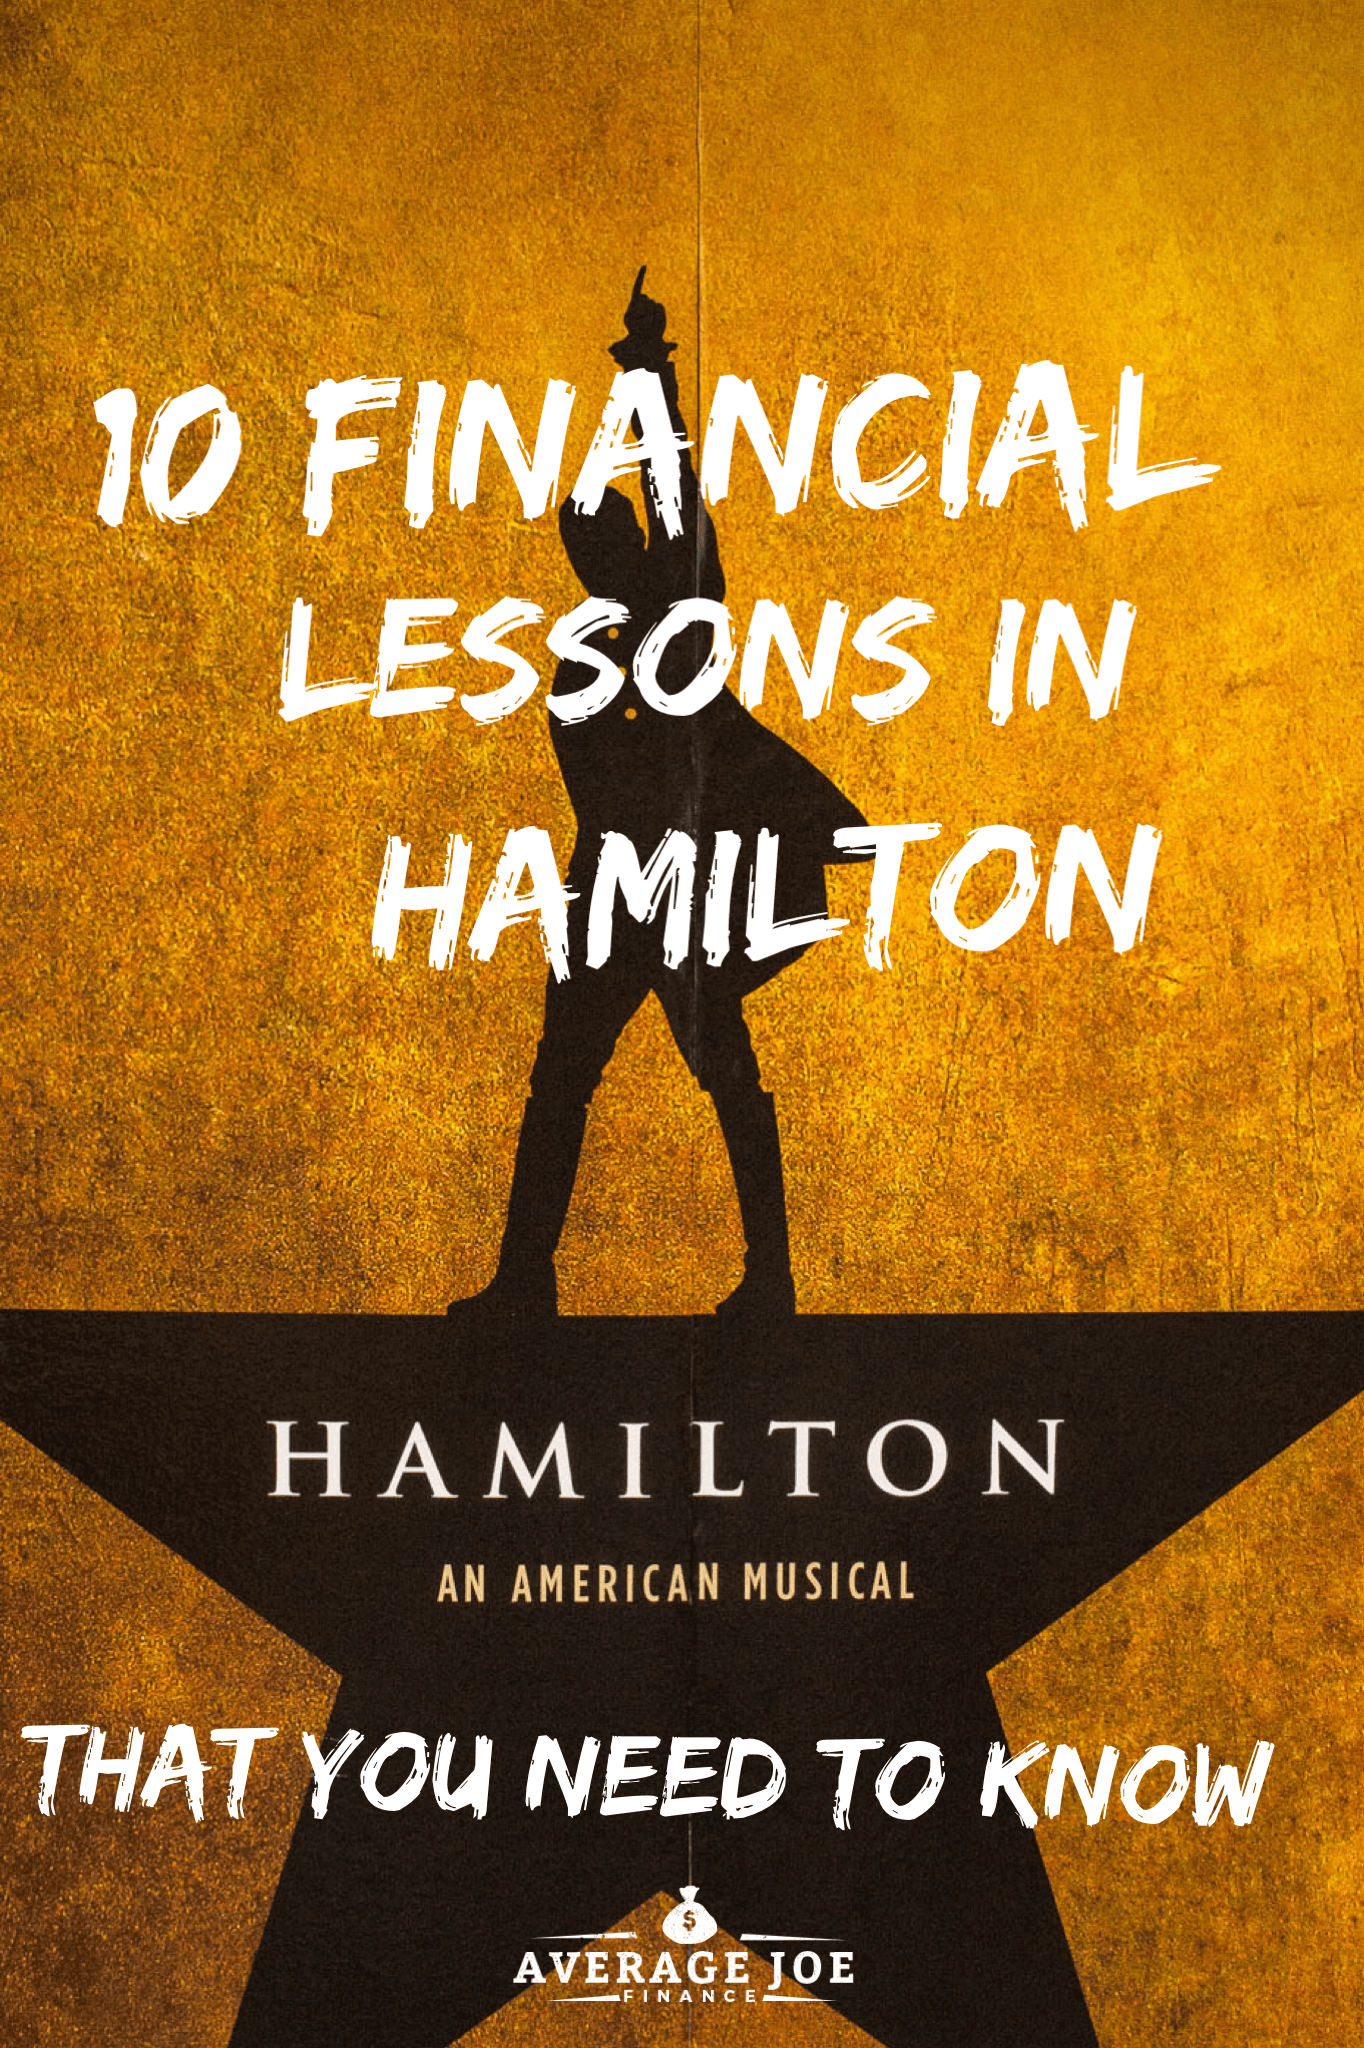 The 10 financial lessons from Hamilton that you need to know